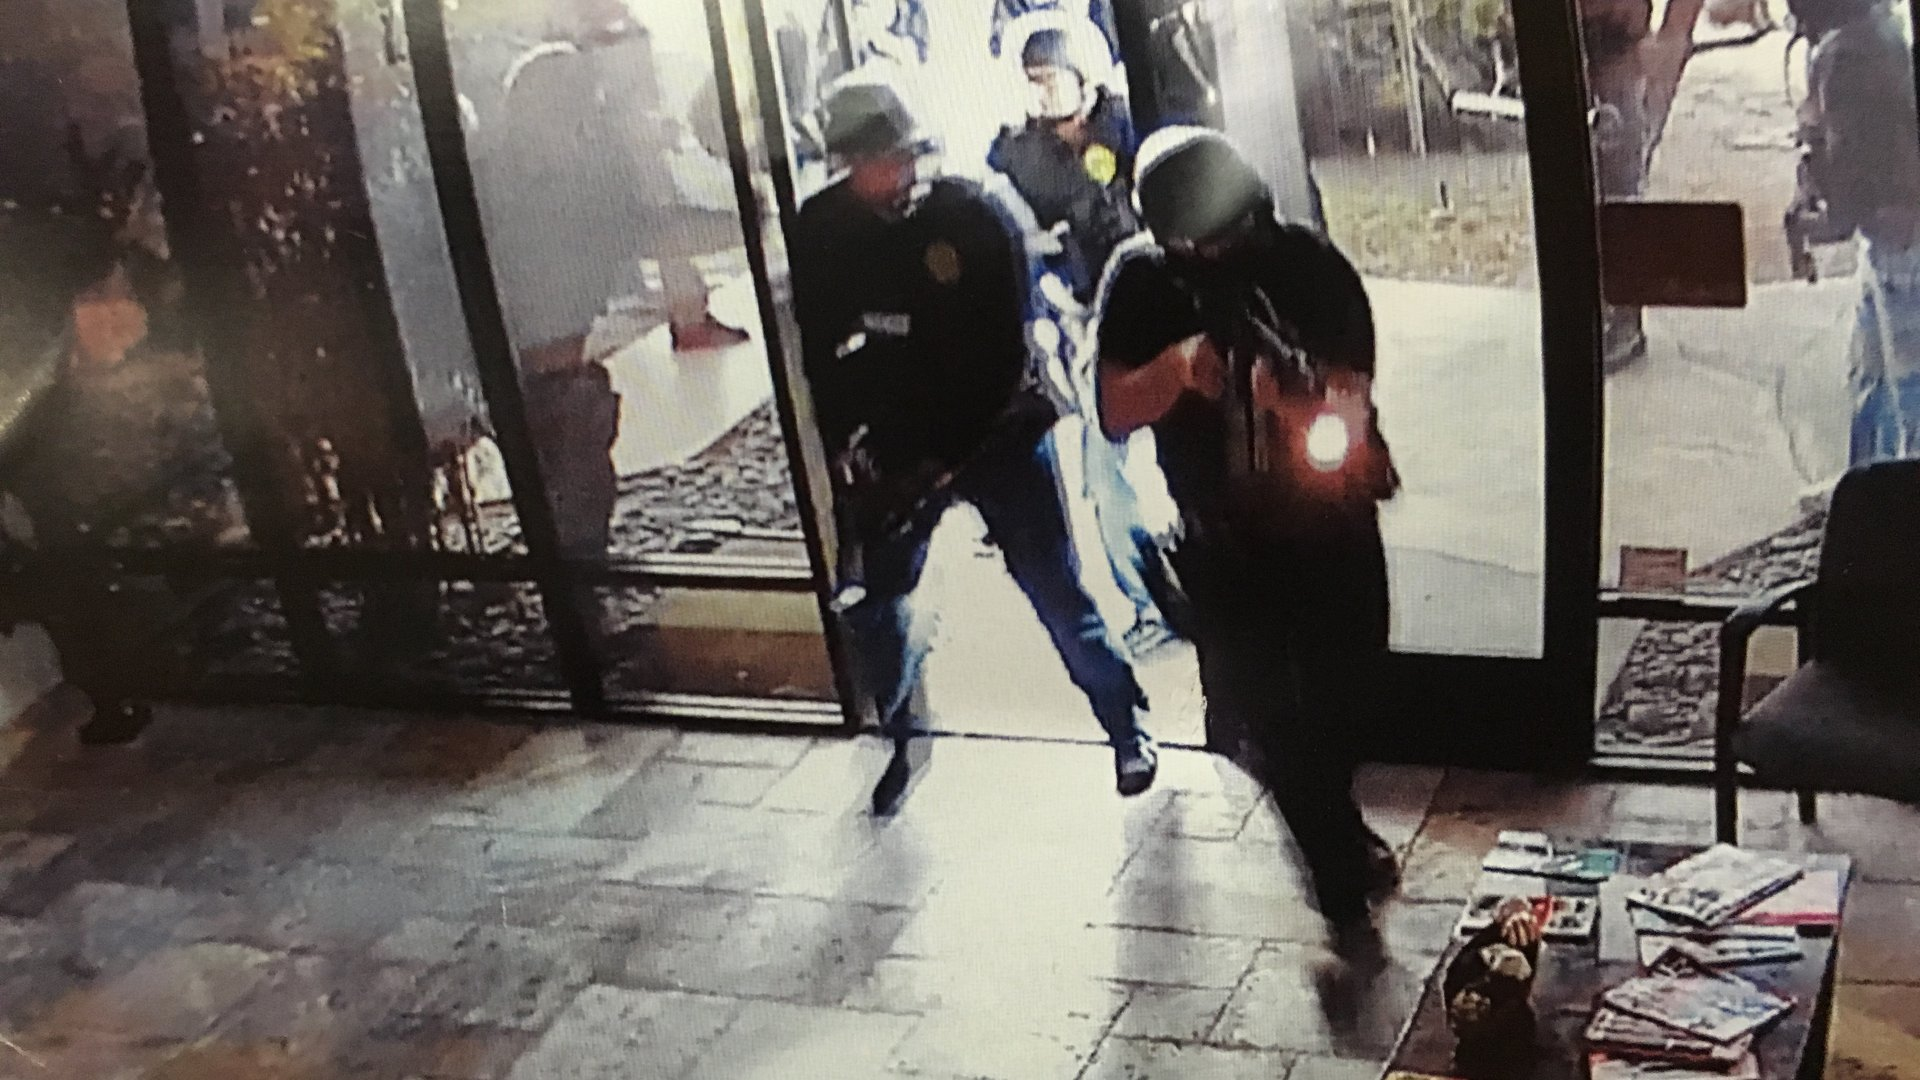 Security camera footage from January 28, 2016, shows police conducting a raid on Med-West, a THC extraction and medical marijuana products manufacturer and distributor in San Diego.